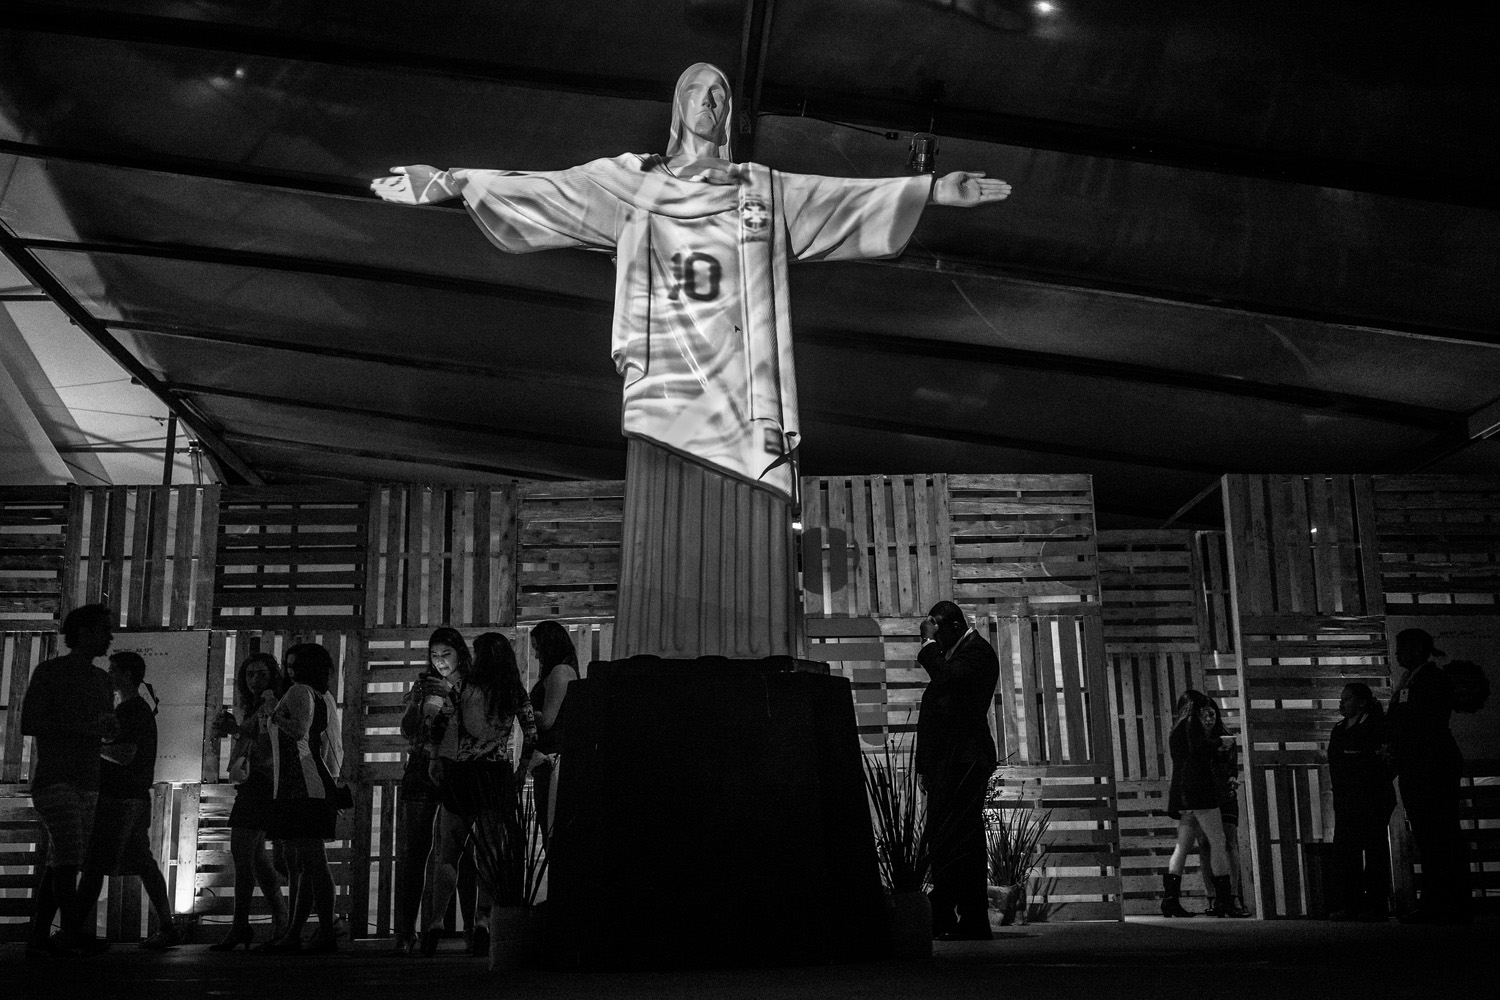 A model of Christ the Redeemer, Rio de Janeiro's most famous monument, dressed in the Brazilian soccer shirt during a night party.